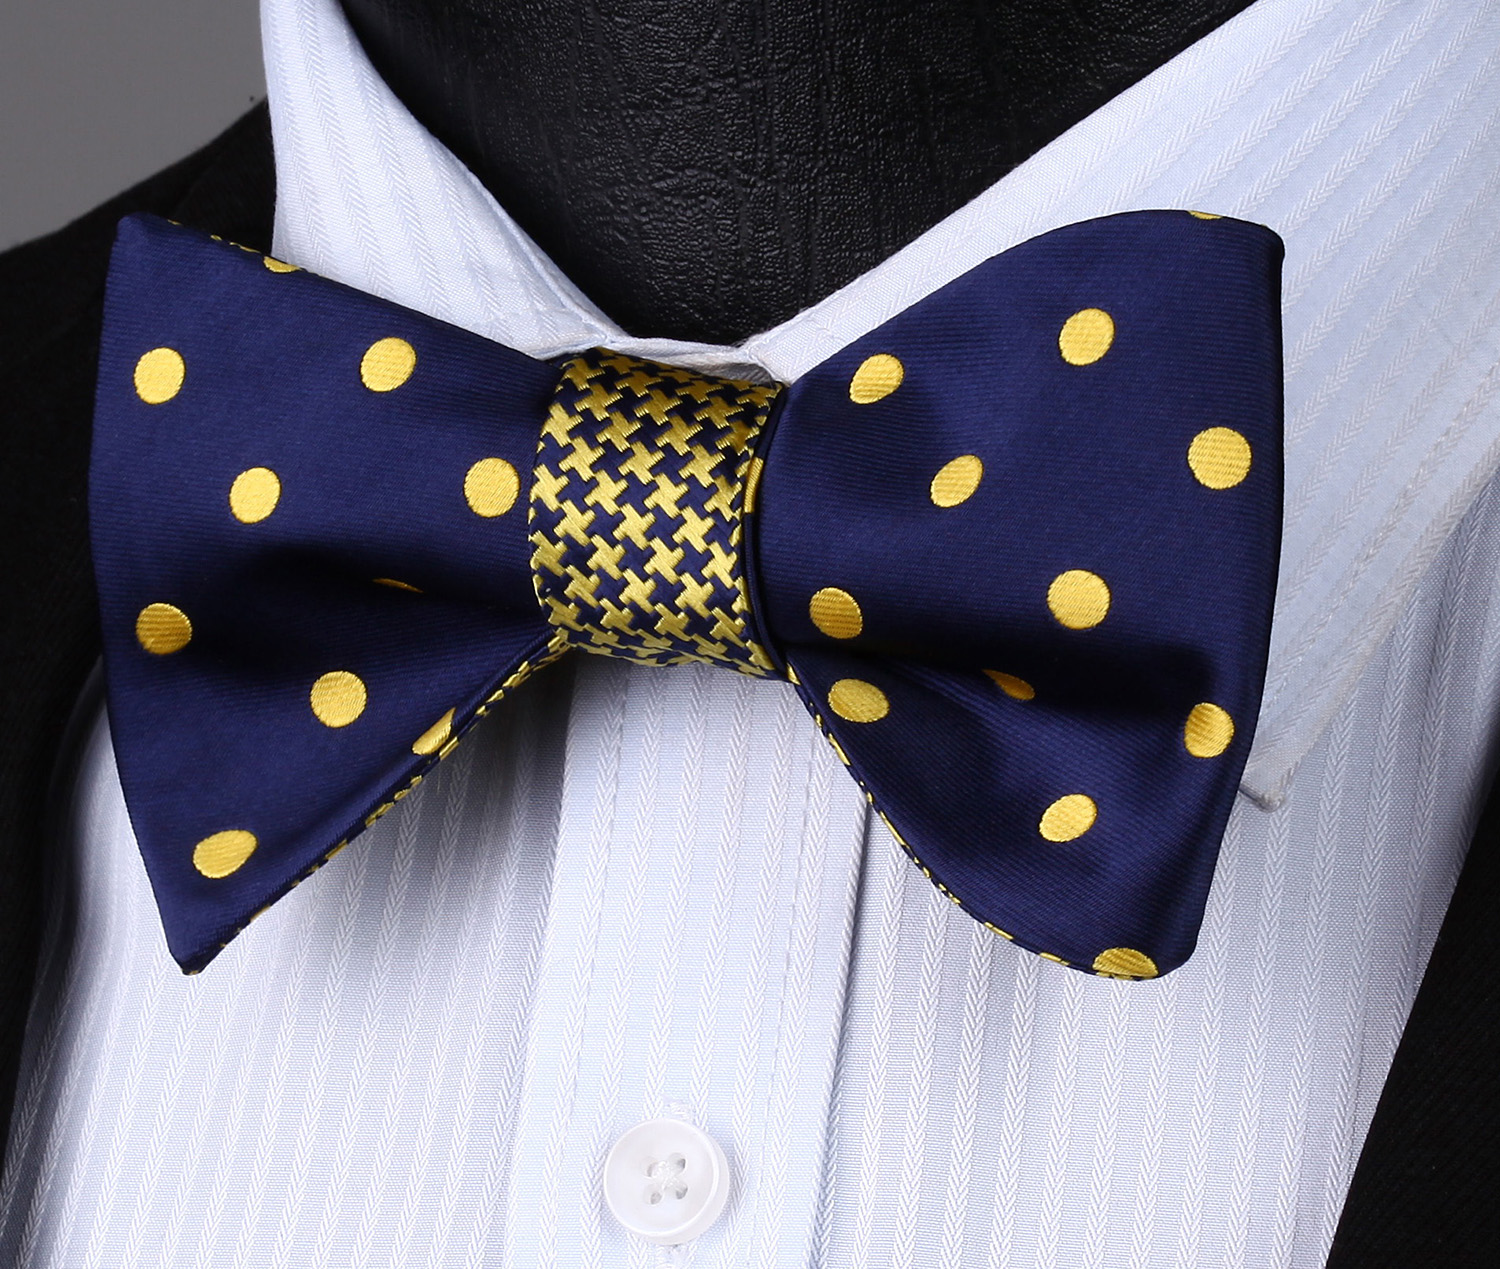 BE04Y Blue Yellow Polka Dot Double Side Bowtie Men Cotton Party Classic Wedding Self Bow Tie